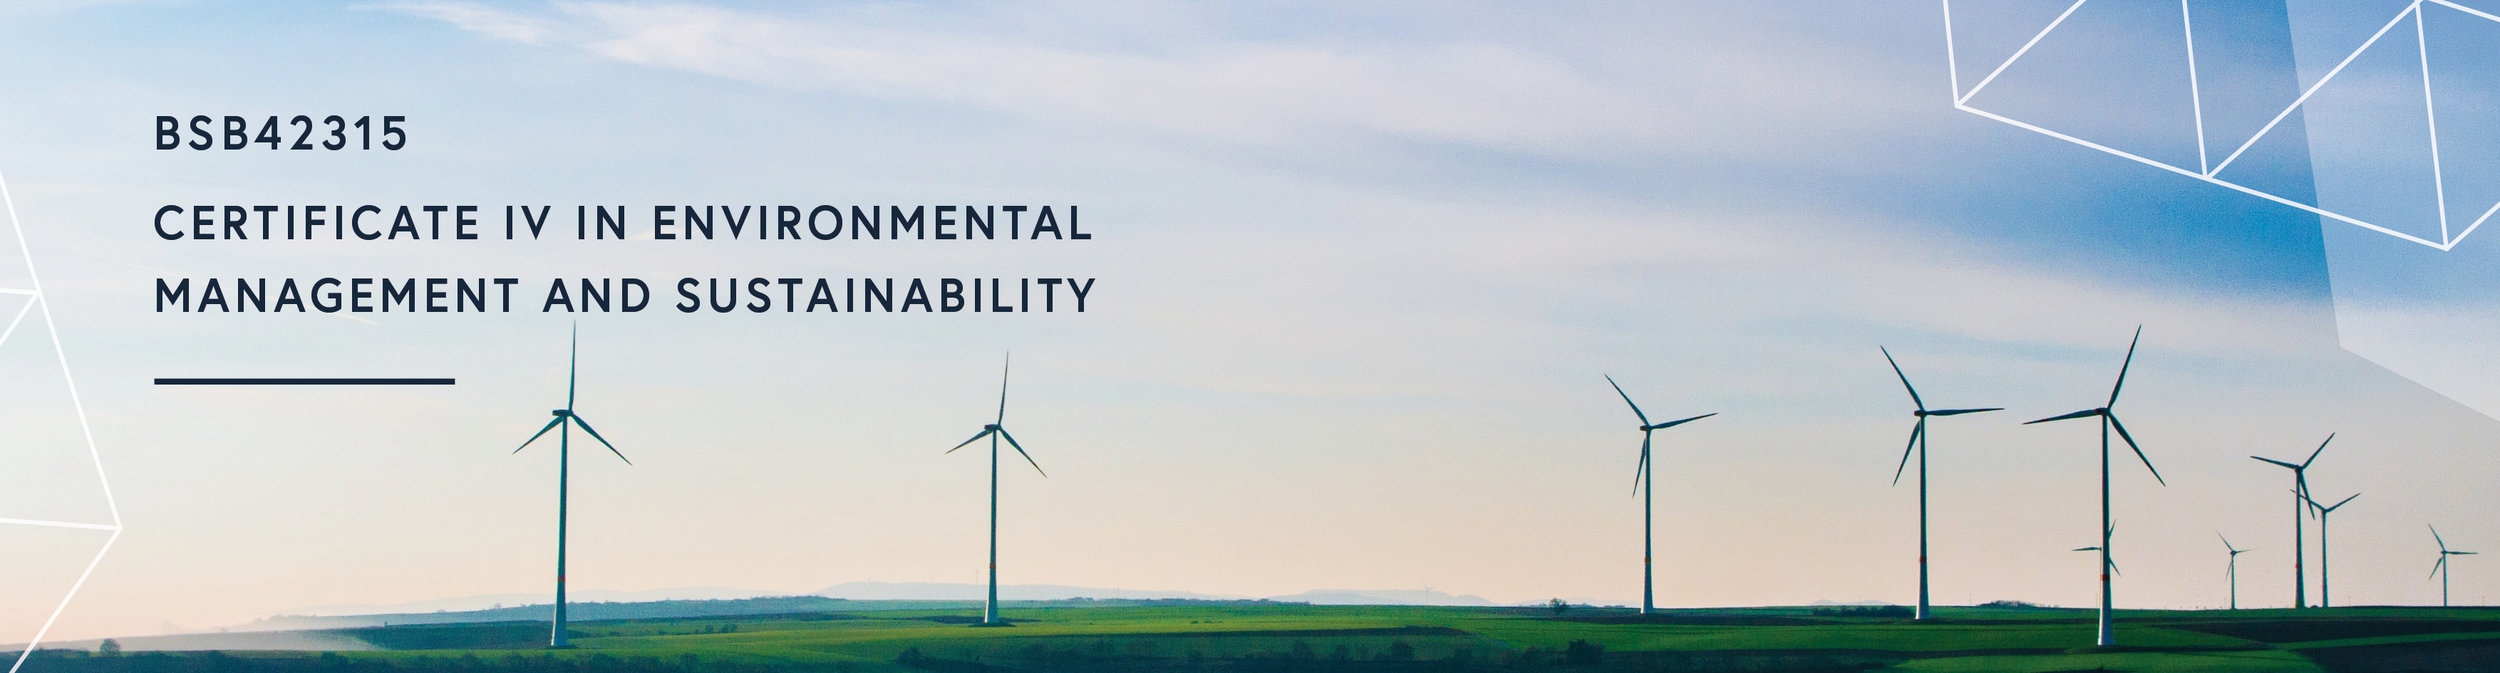 Certificate IV in Environmental Management and Sustainability